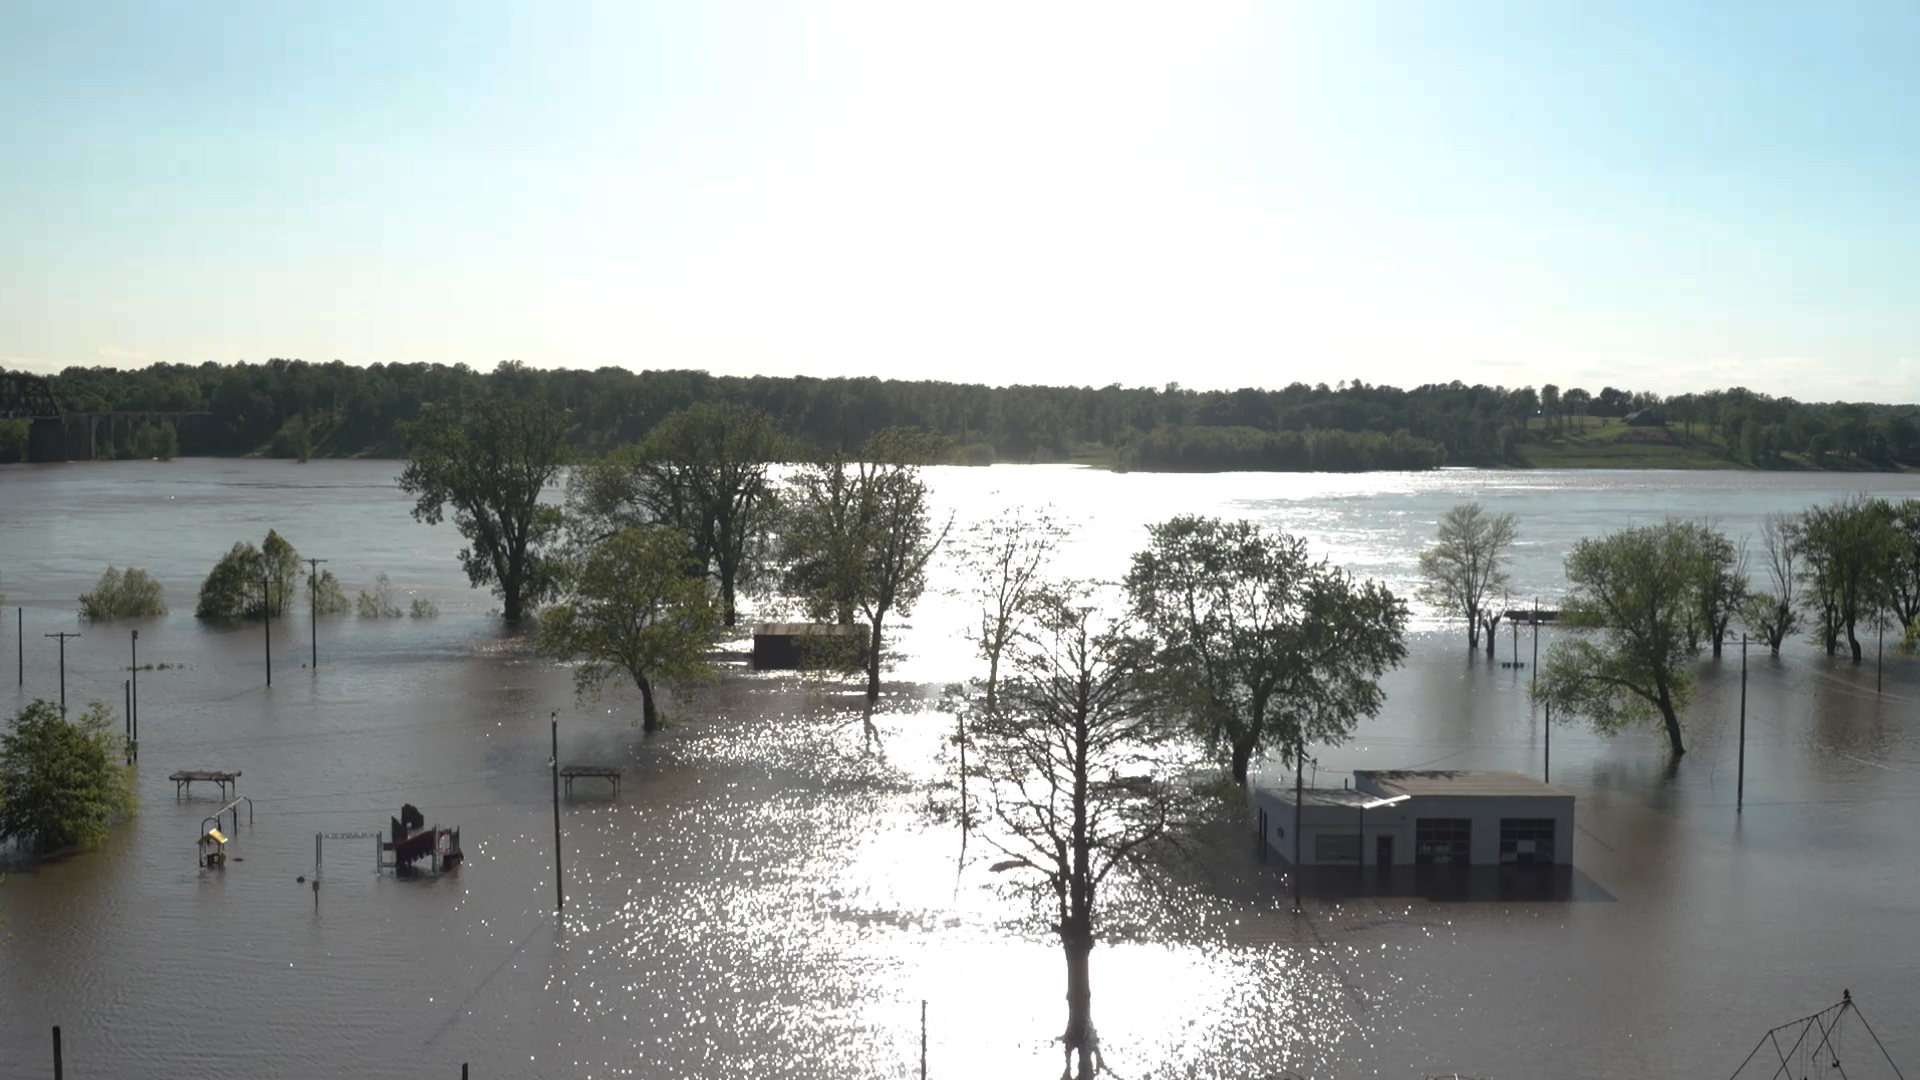 The struggle to control the Mississippi River can help us